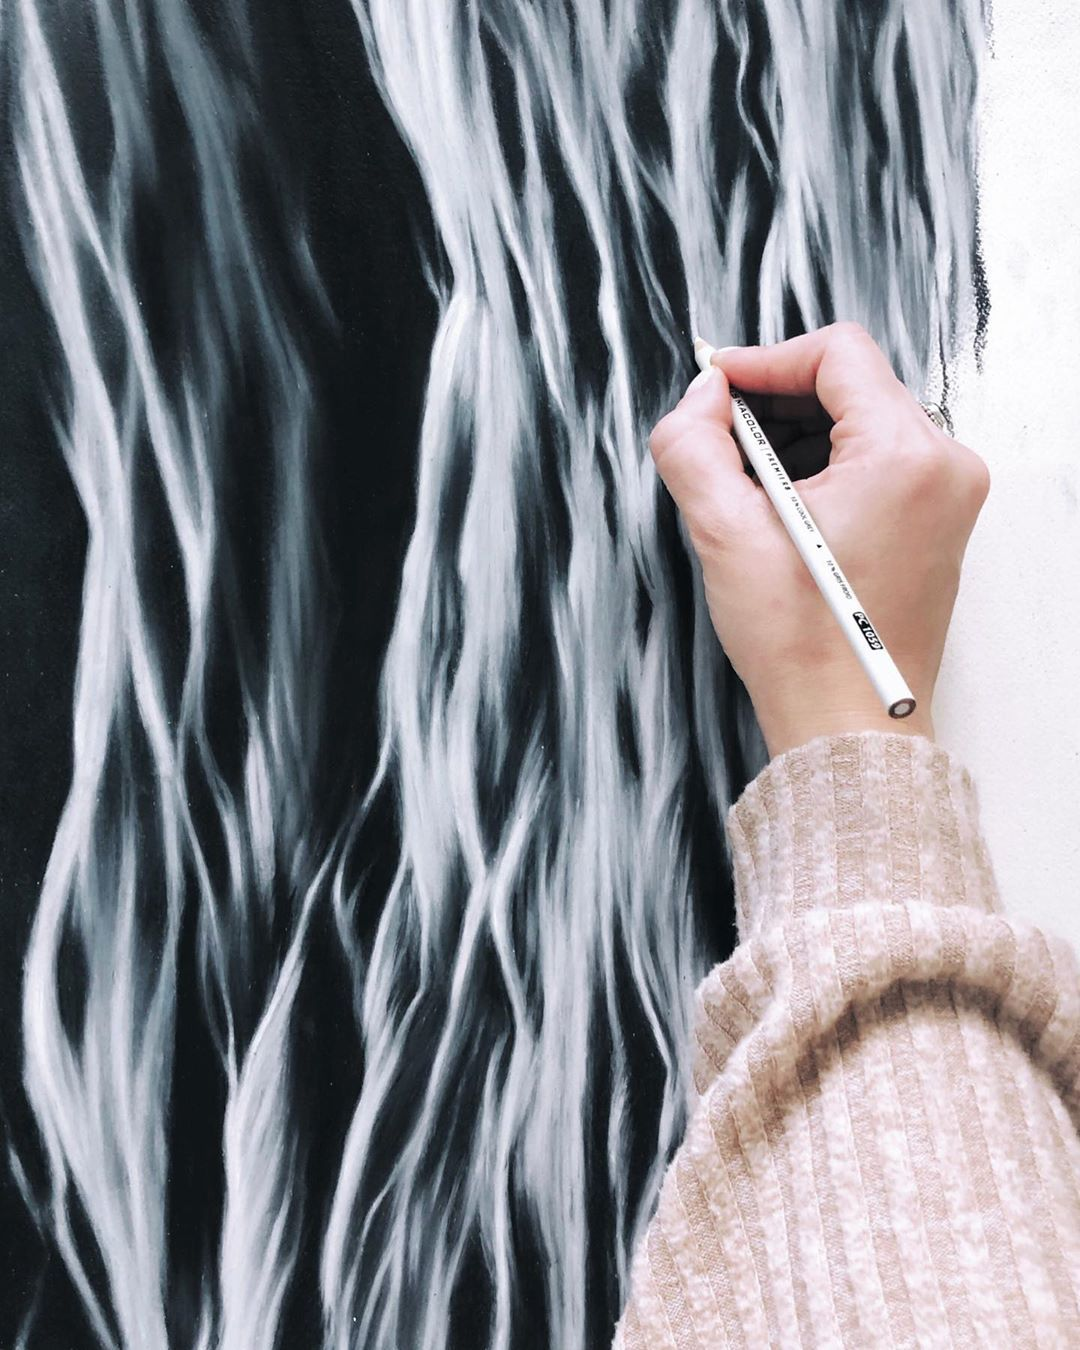 Hyperrealistic Colored Pencil Drawings Capture the Beauty